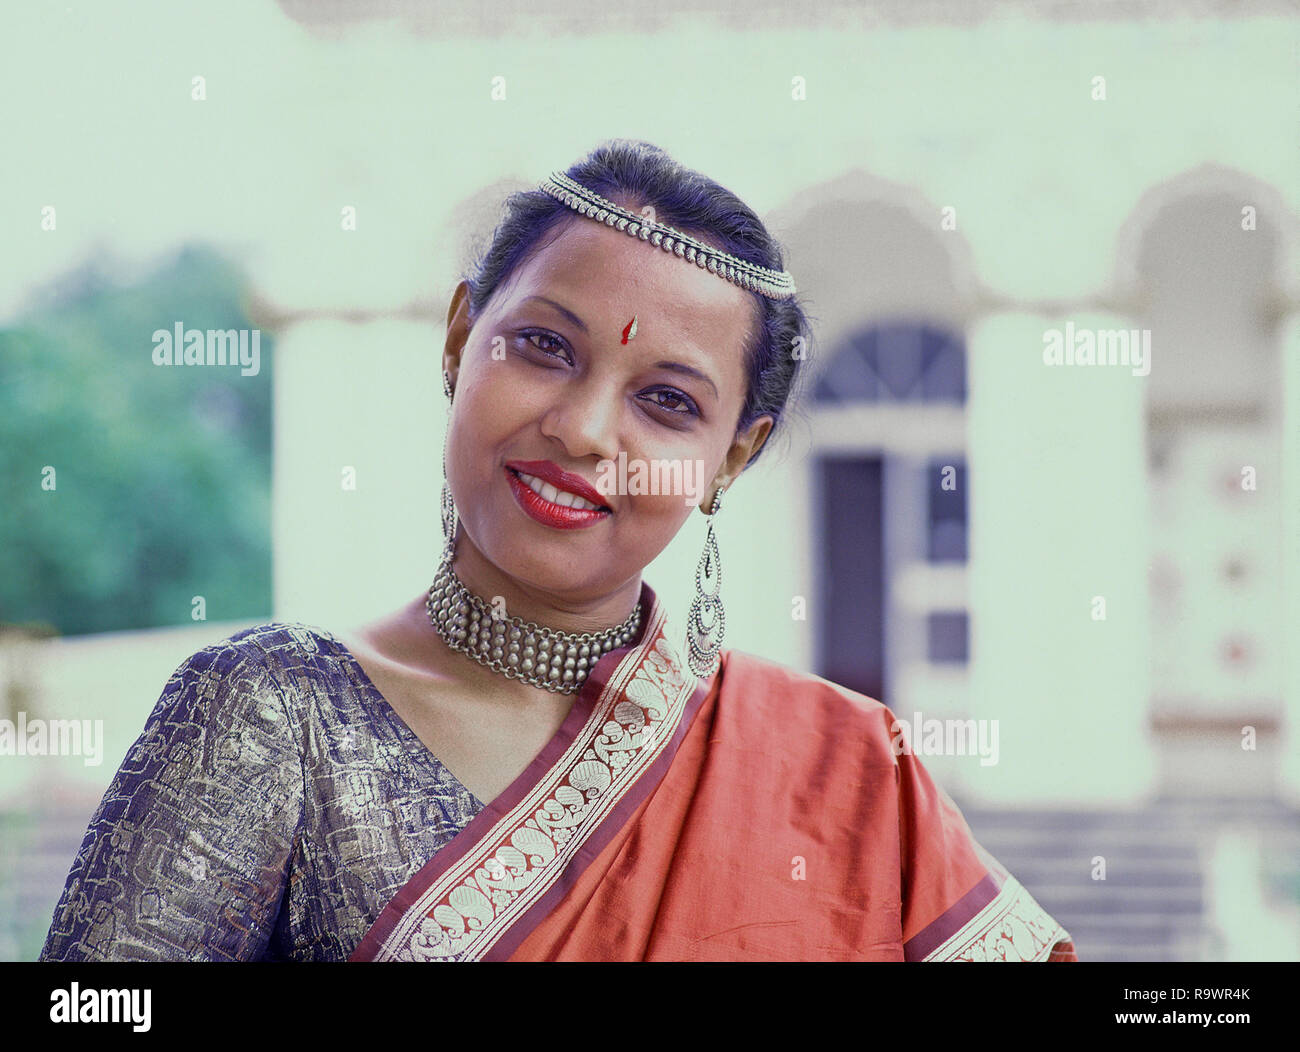 10928d4d3 Young Mauritian woman wearing traditional sari complete with over shoulder  pallu, necklace, decorative earrings